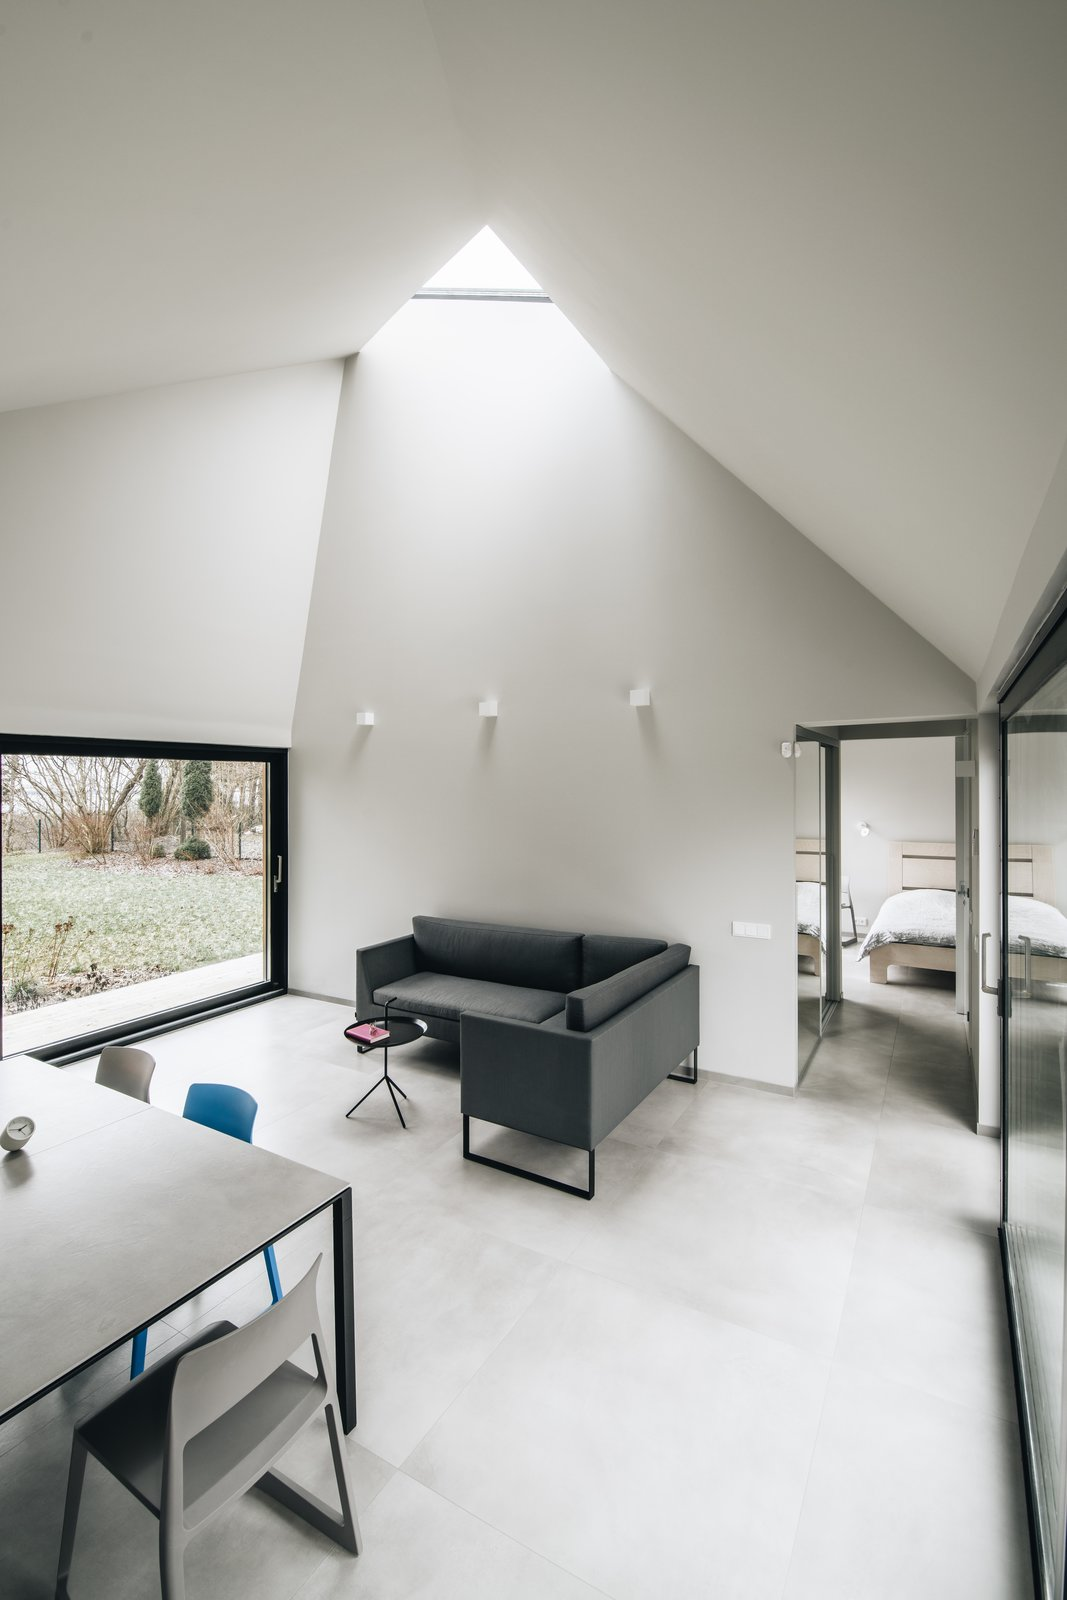 Living Room, Sofa, Wall Lighting, End Tables, Table, and Chair Fully-glazed walls on two sides, and a triangular skylight flood the living areas with light.  Photo 10 of 13 in This Forest Retreat Is a Modern Take on the Traditional Estonian Hut